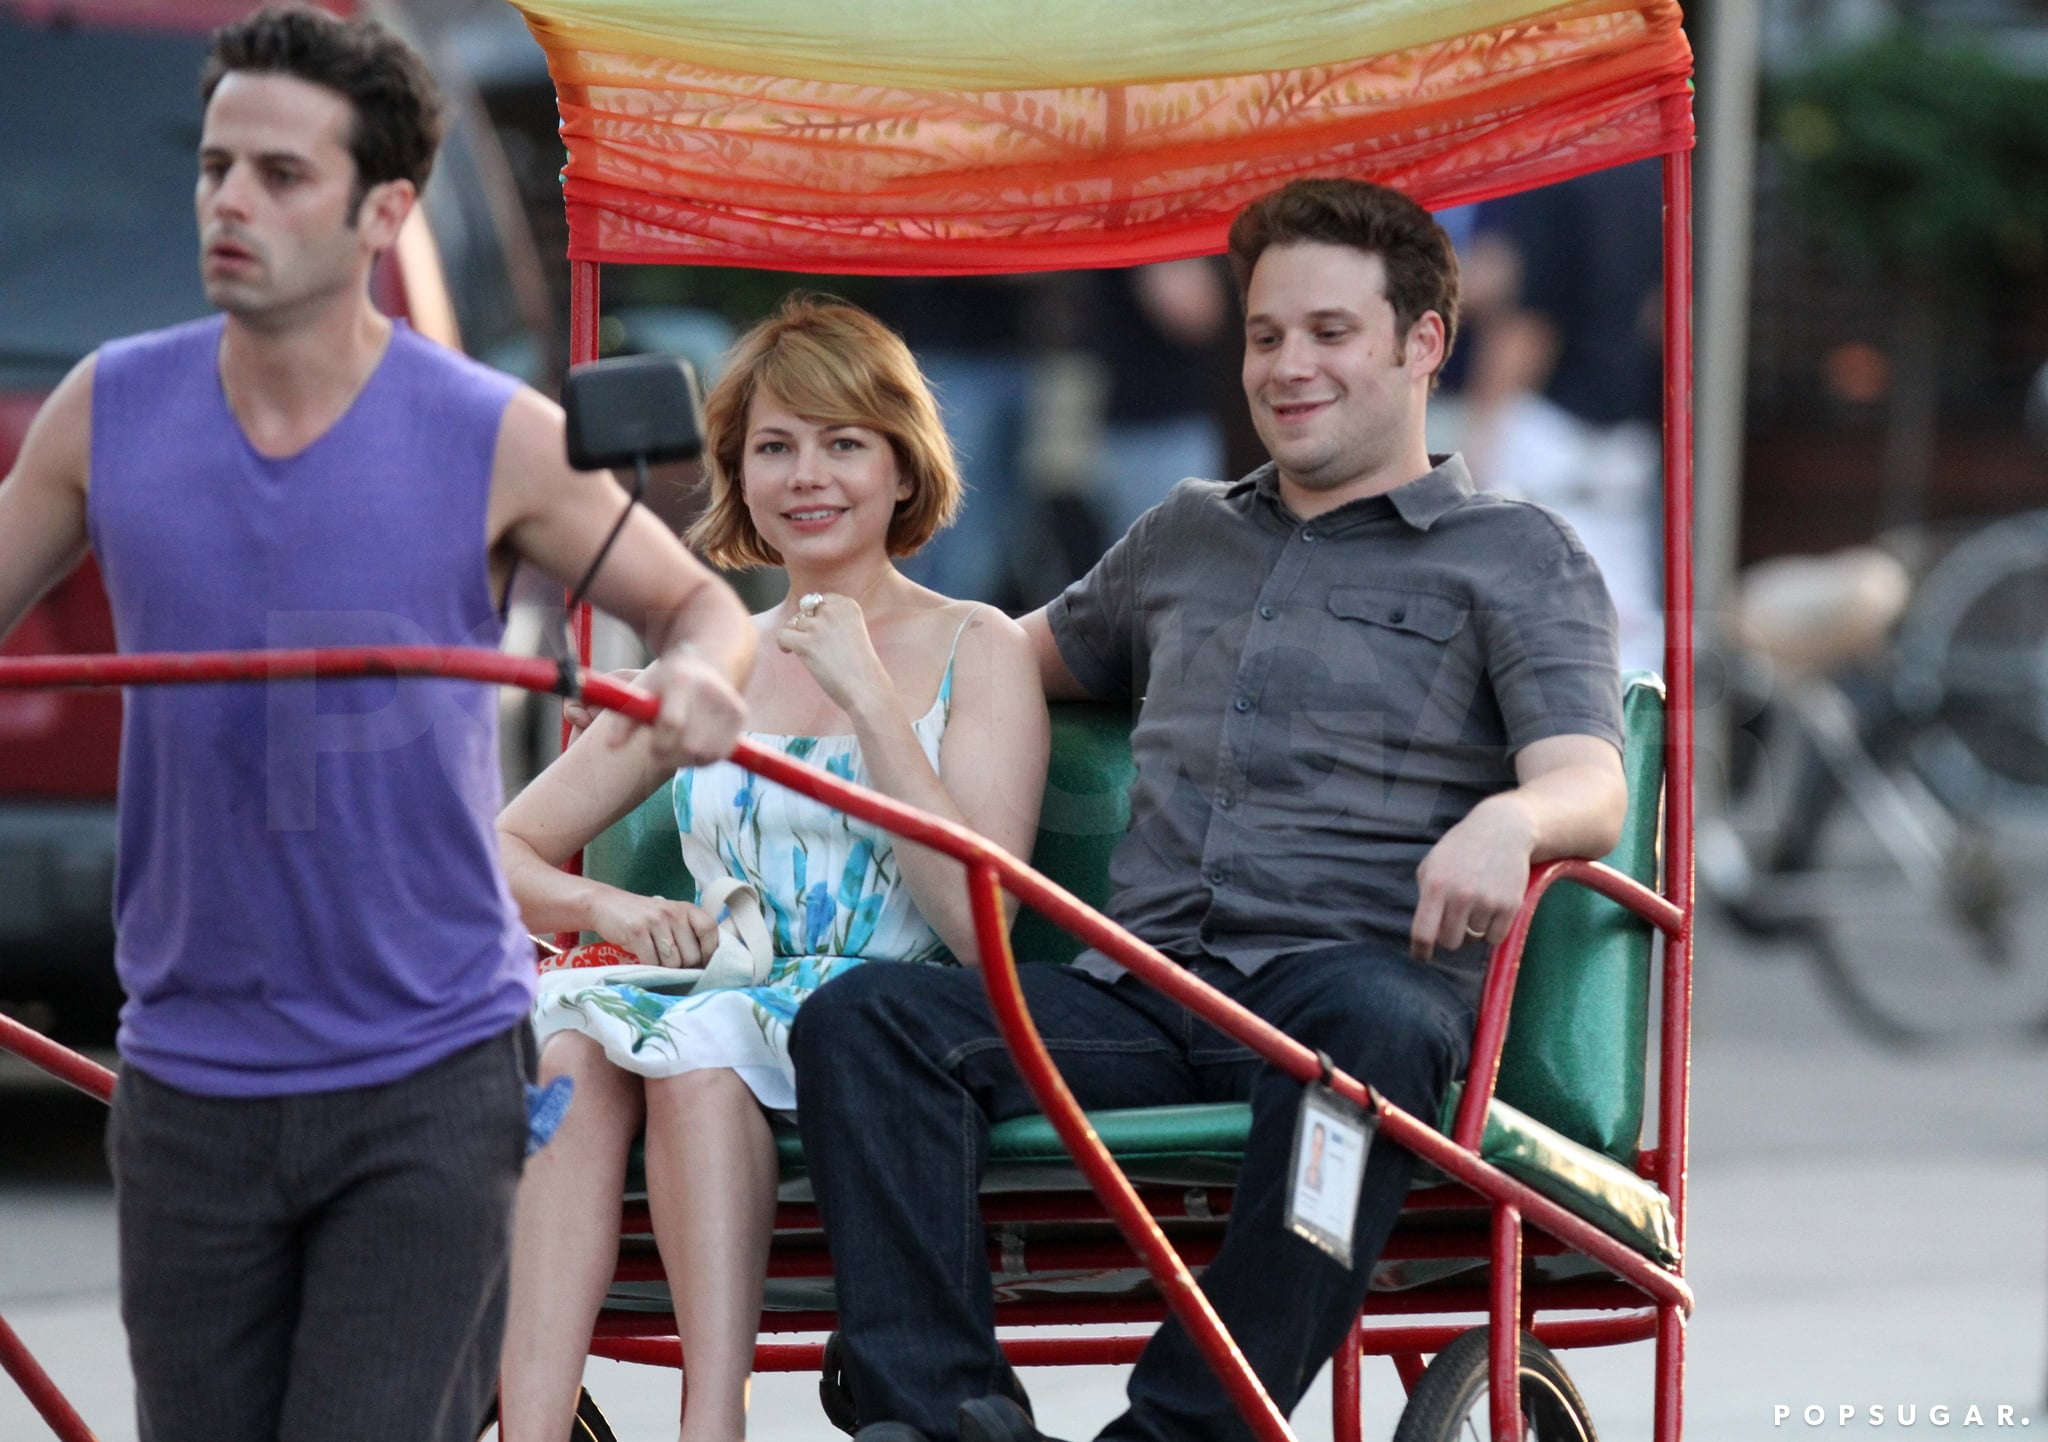 Seth Rogen and Michelle took a rickshaw ride together in August of 2010 while filming Take This Waltz on location.